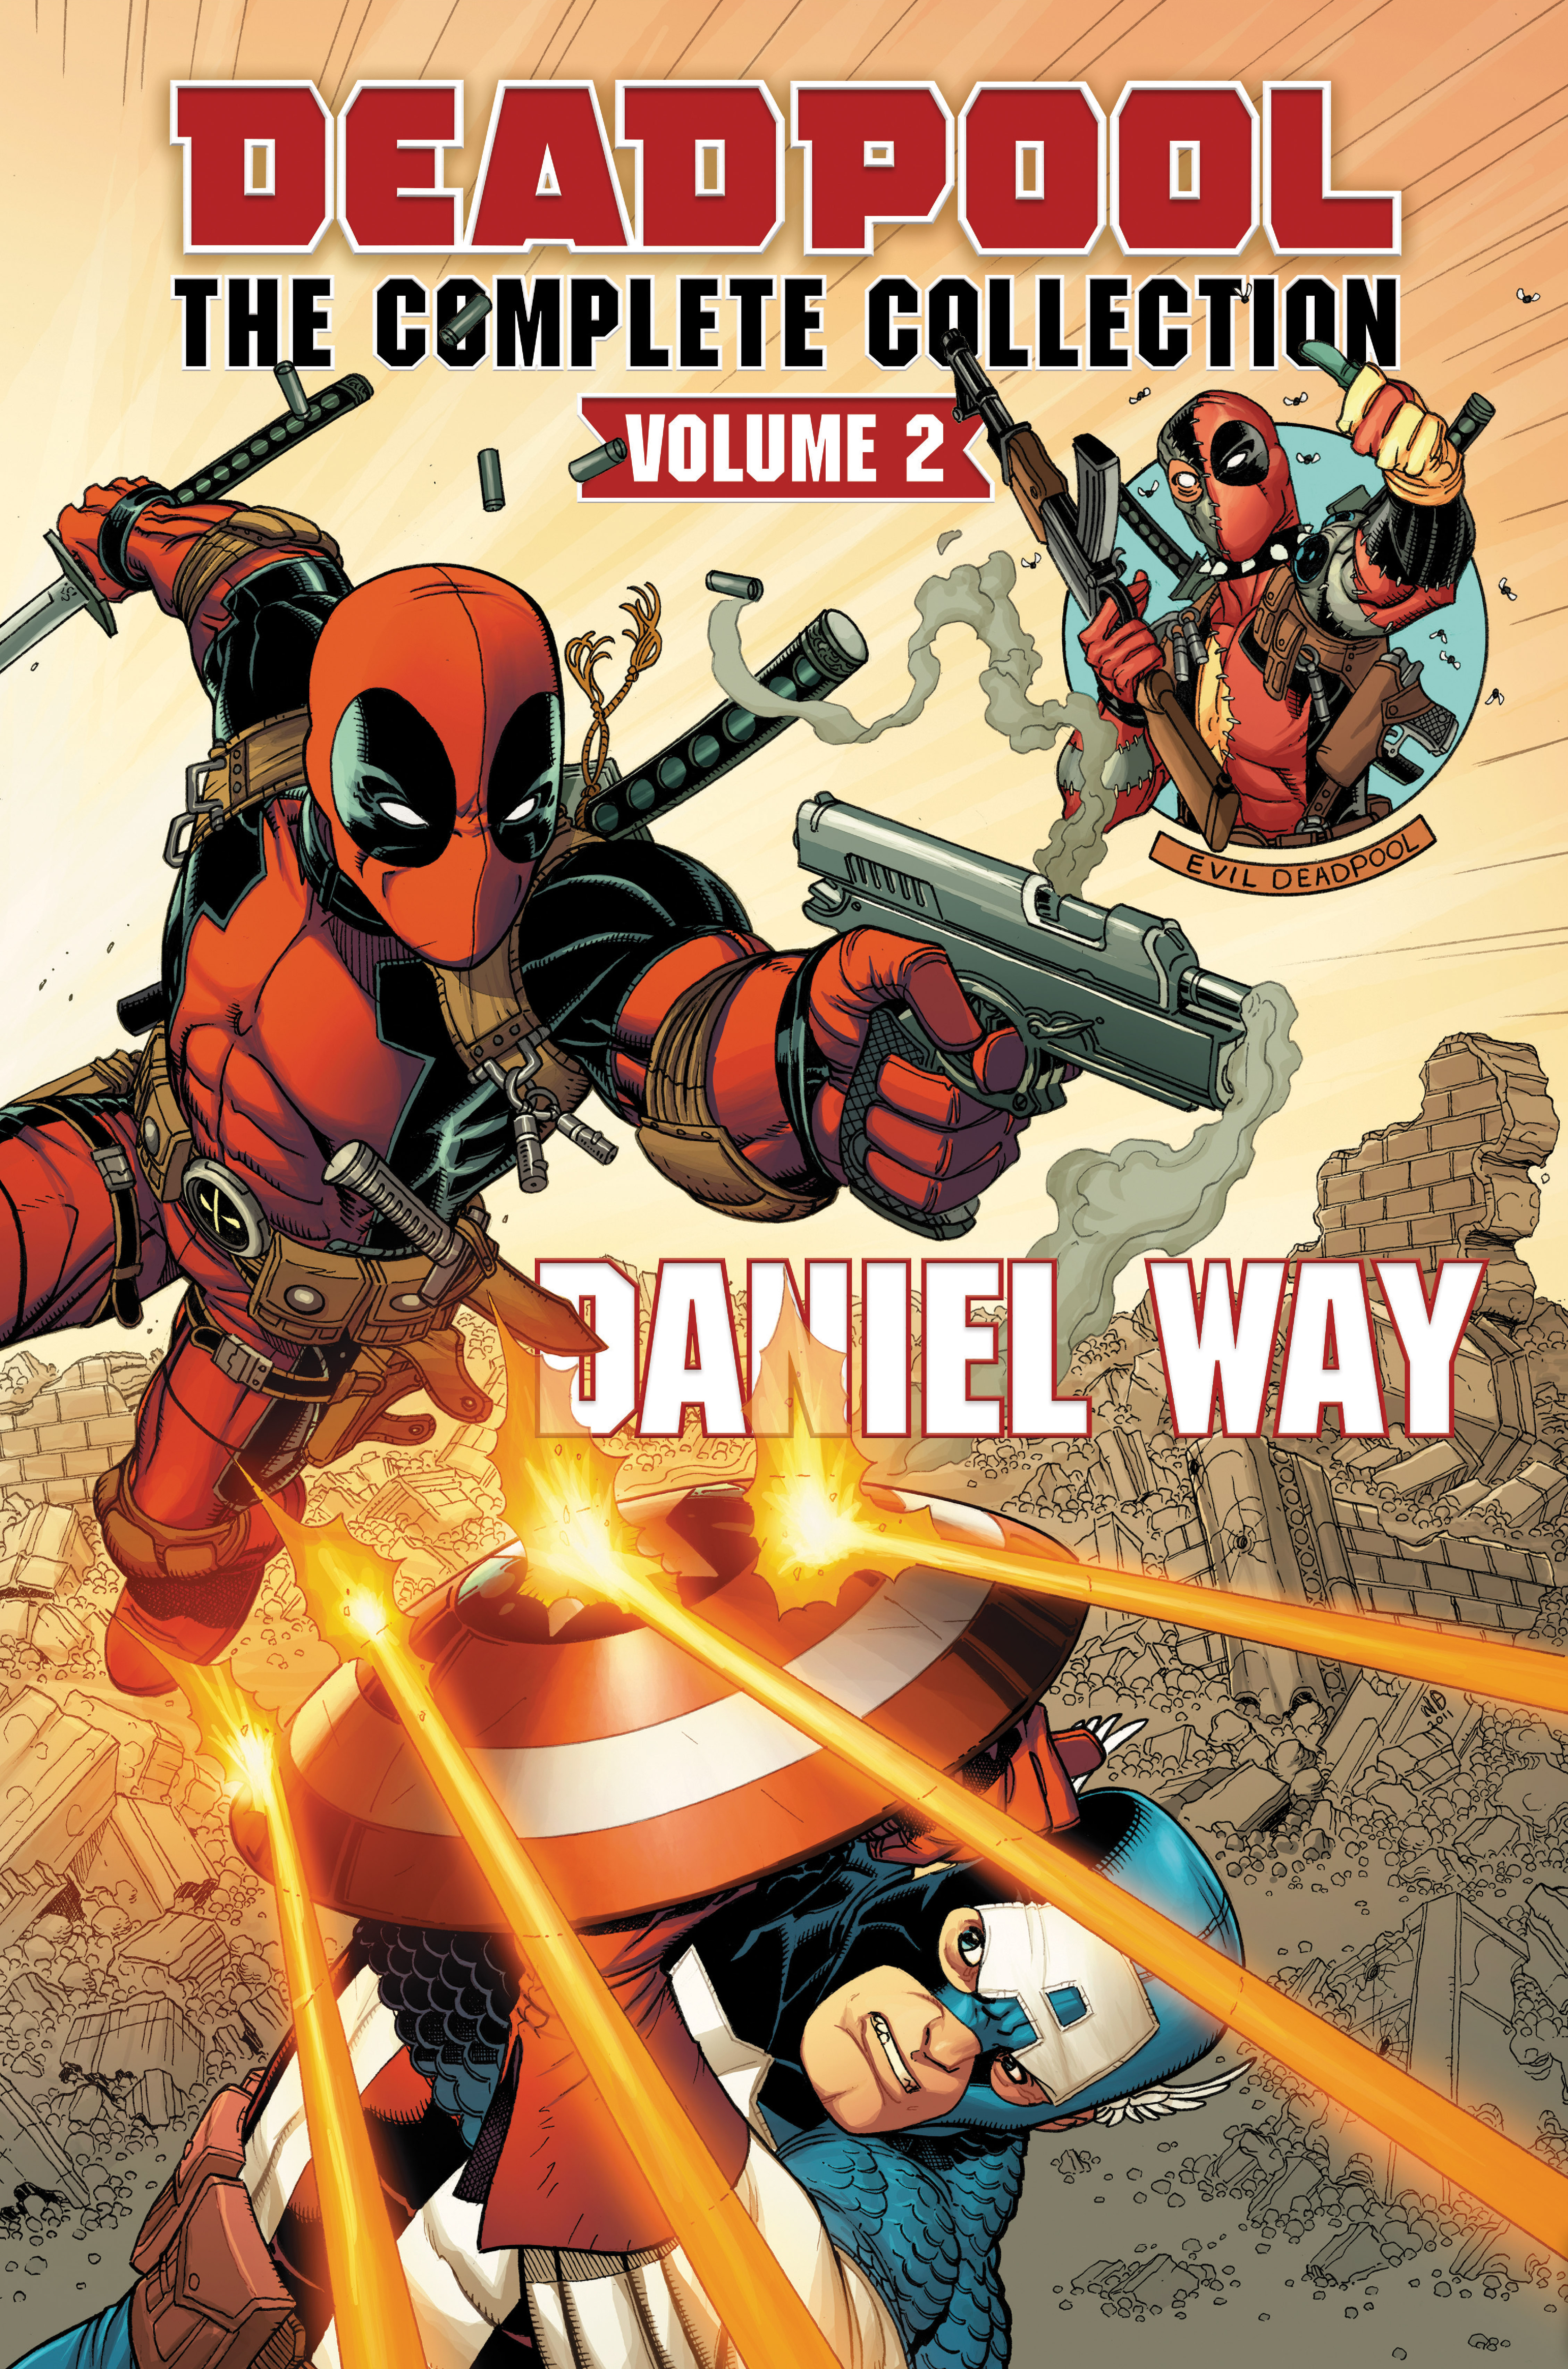 Deadpool By Daniel Way Omnibus Vol. 2 (Hardcover)